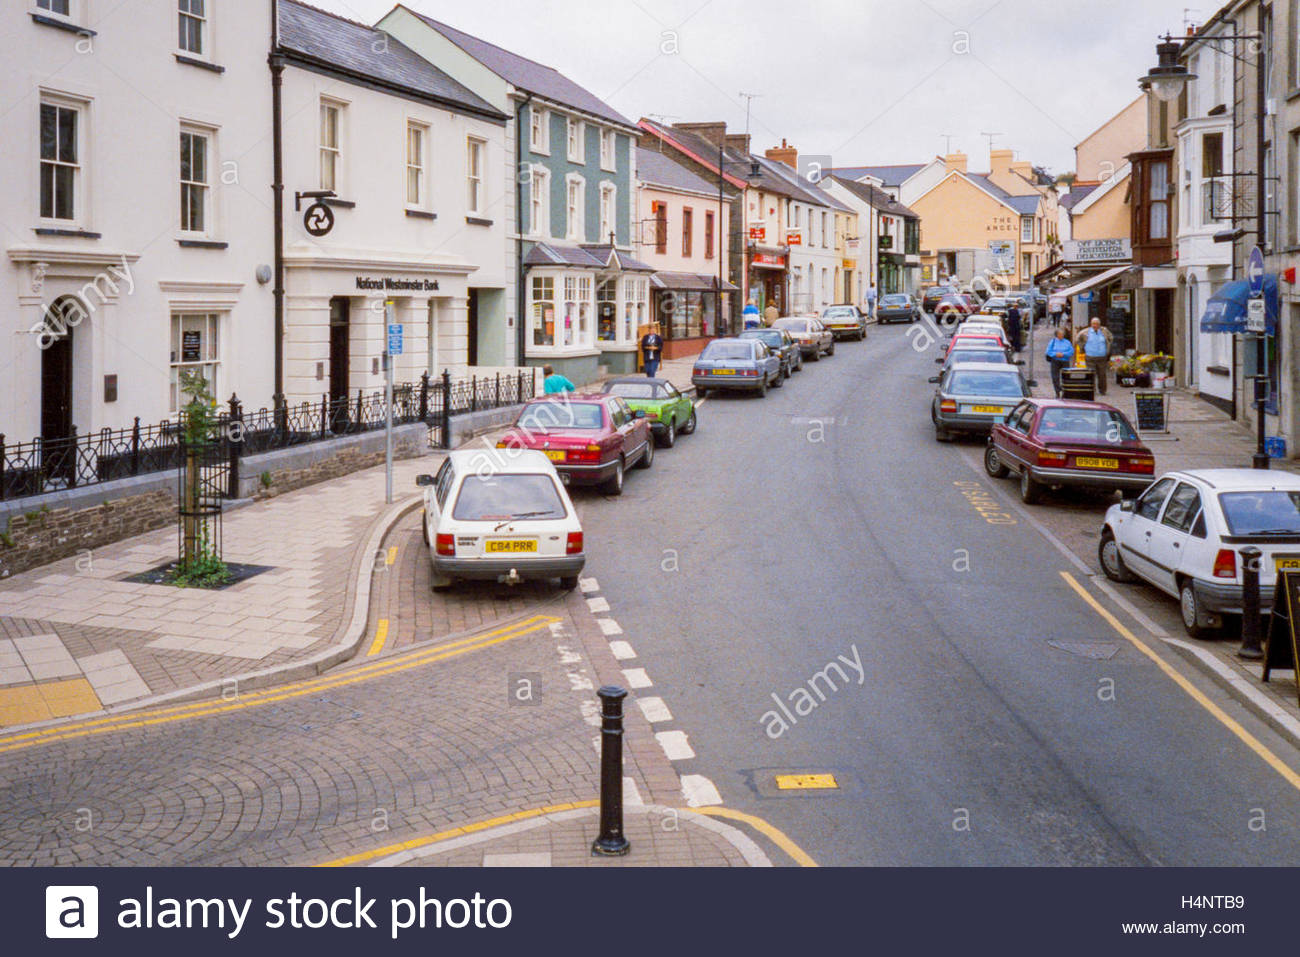 Narberth, Pembrokeshire, Wales, UK - street scene with parked cars, business premises and shops - 1995 - Stock Image